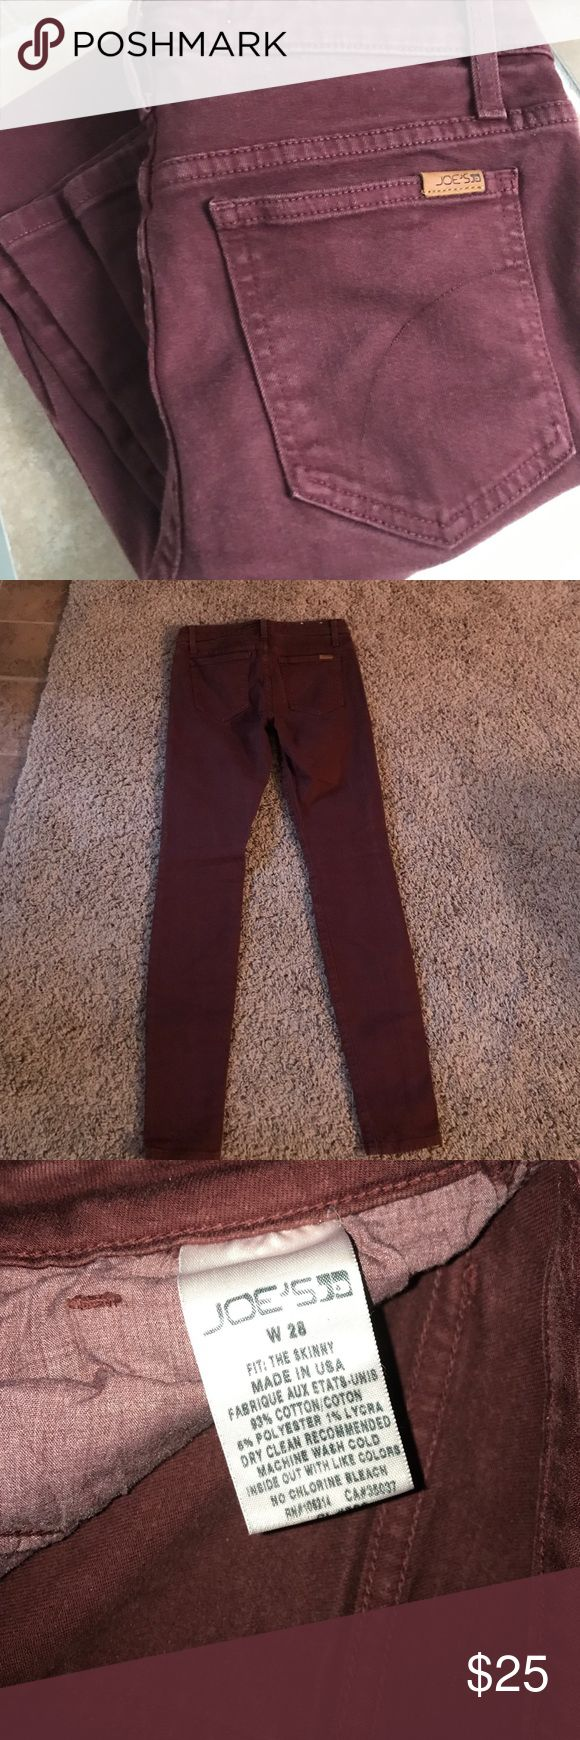 Maroon Joe's skinny jeans GUC perfect season for Maroon jeans! Bundle for extra savings! Jeans Skinny